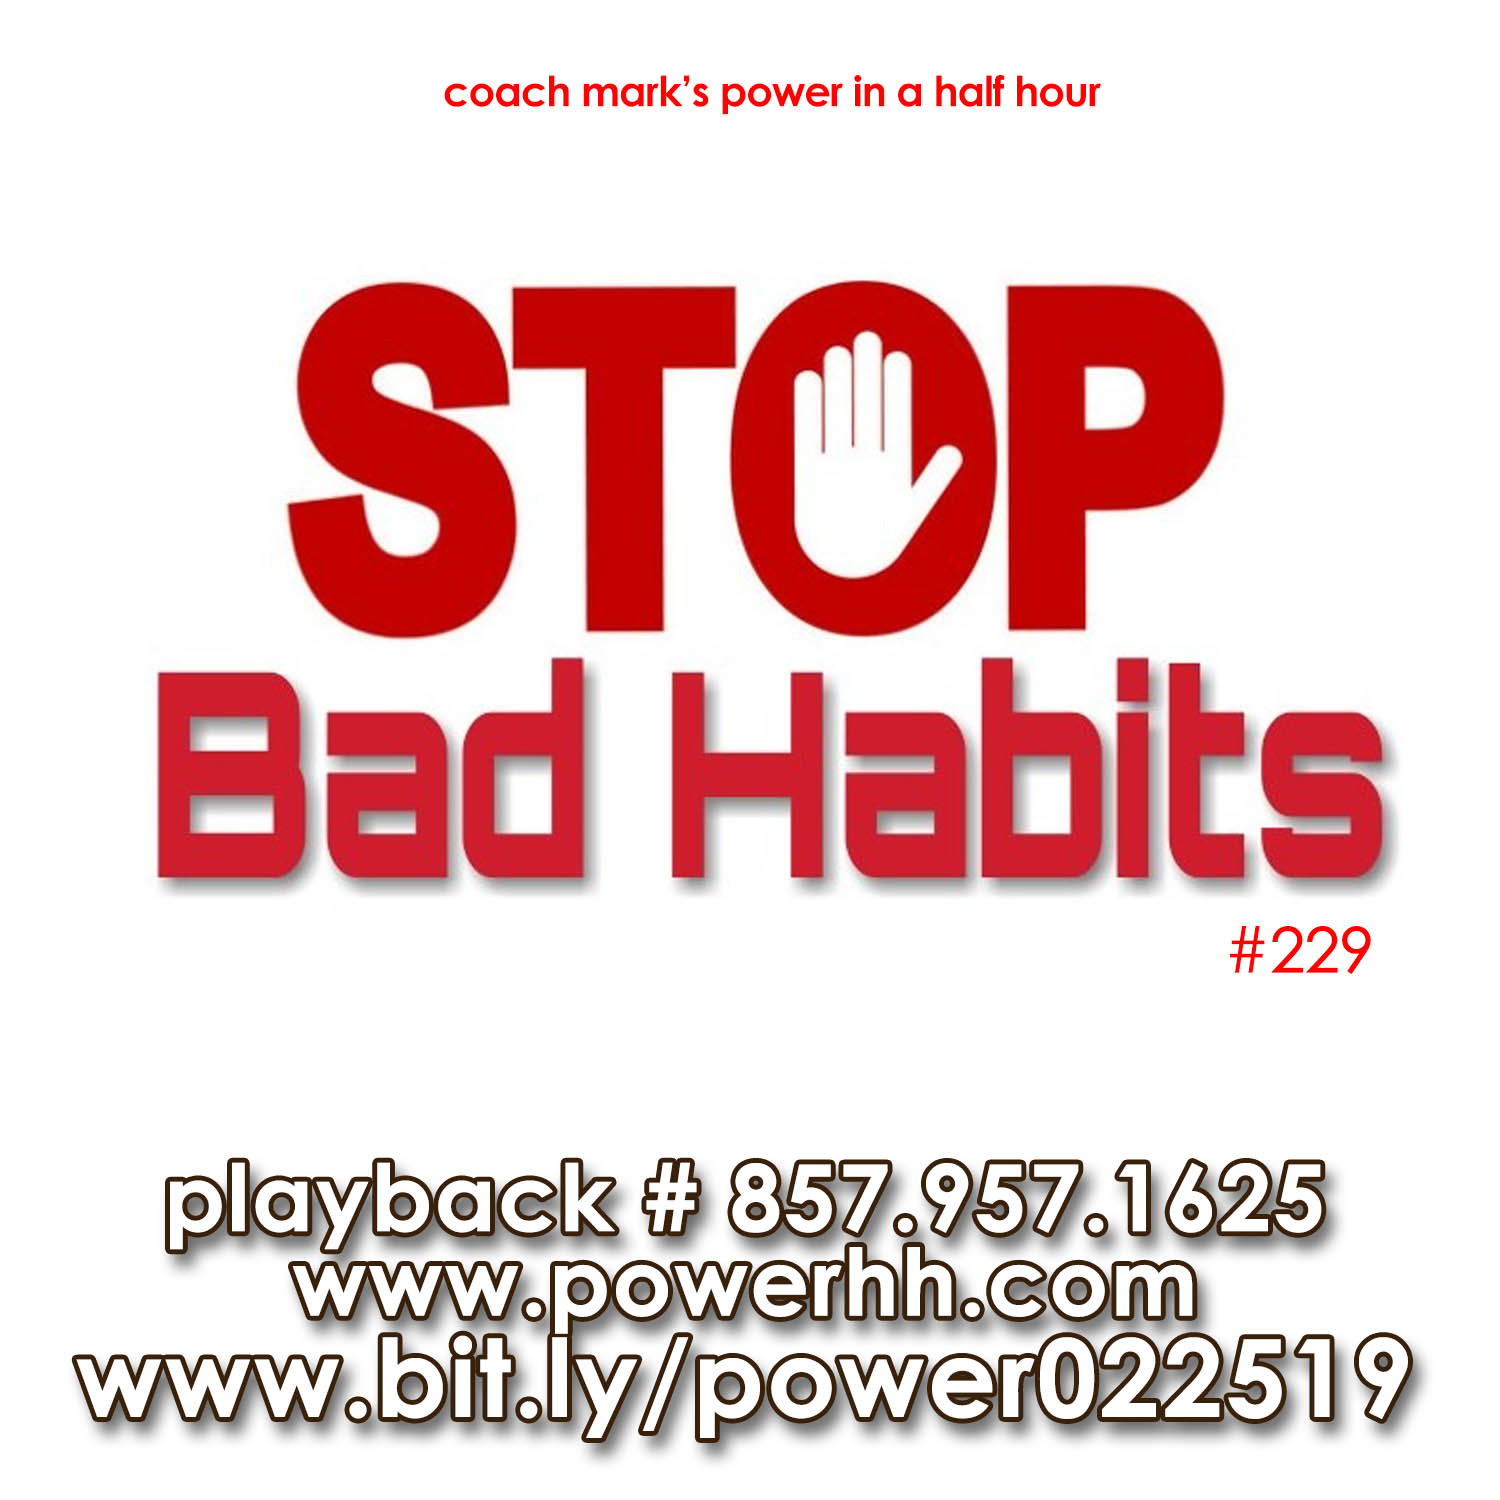 power replay 022519 (1)